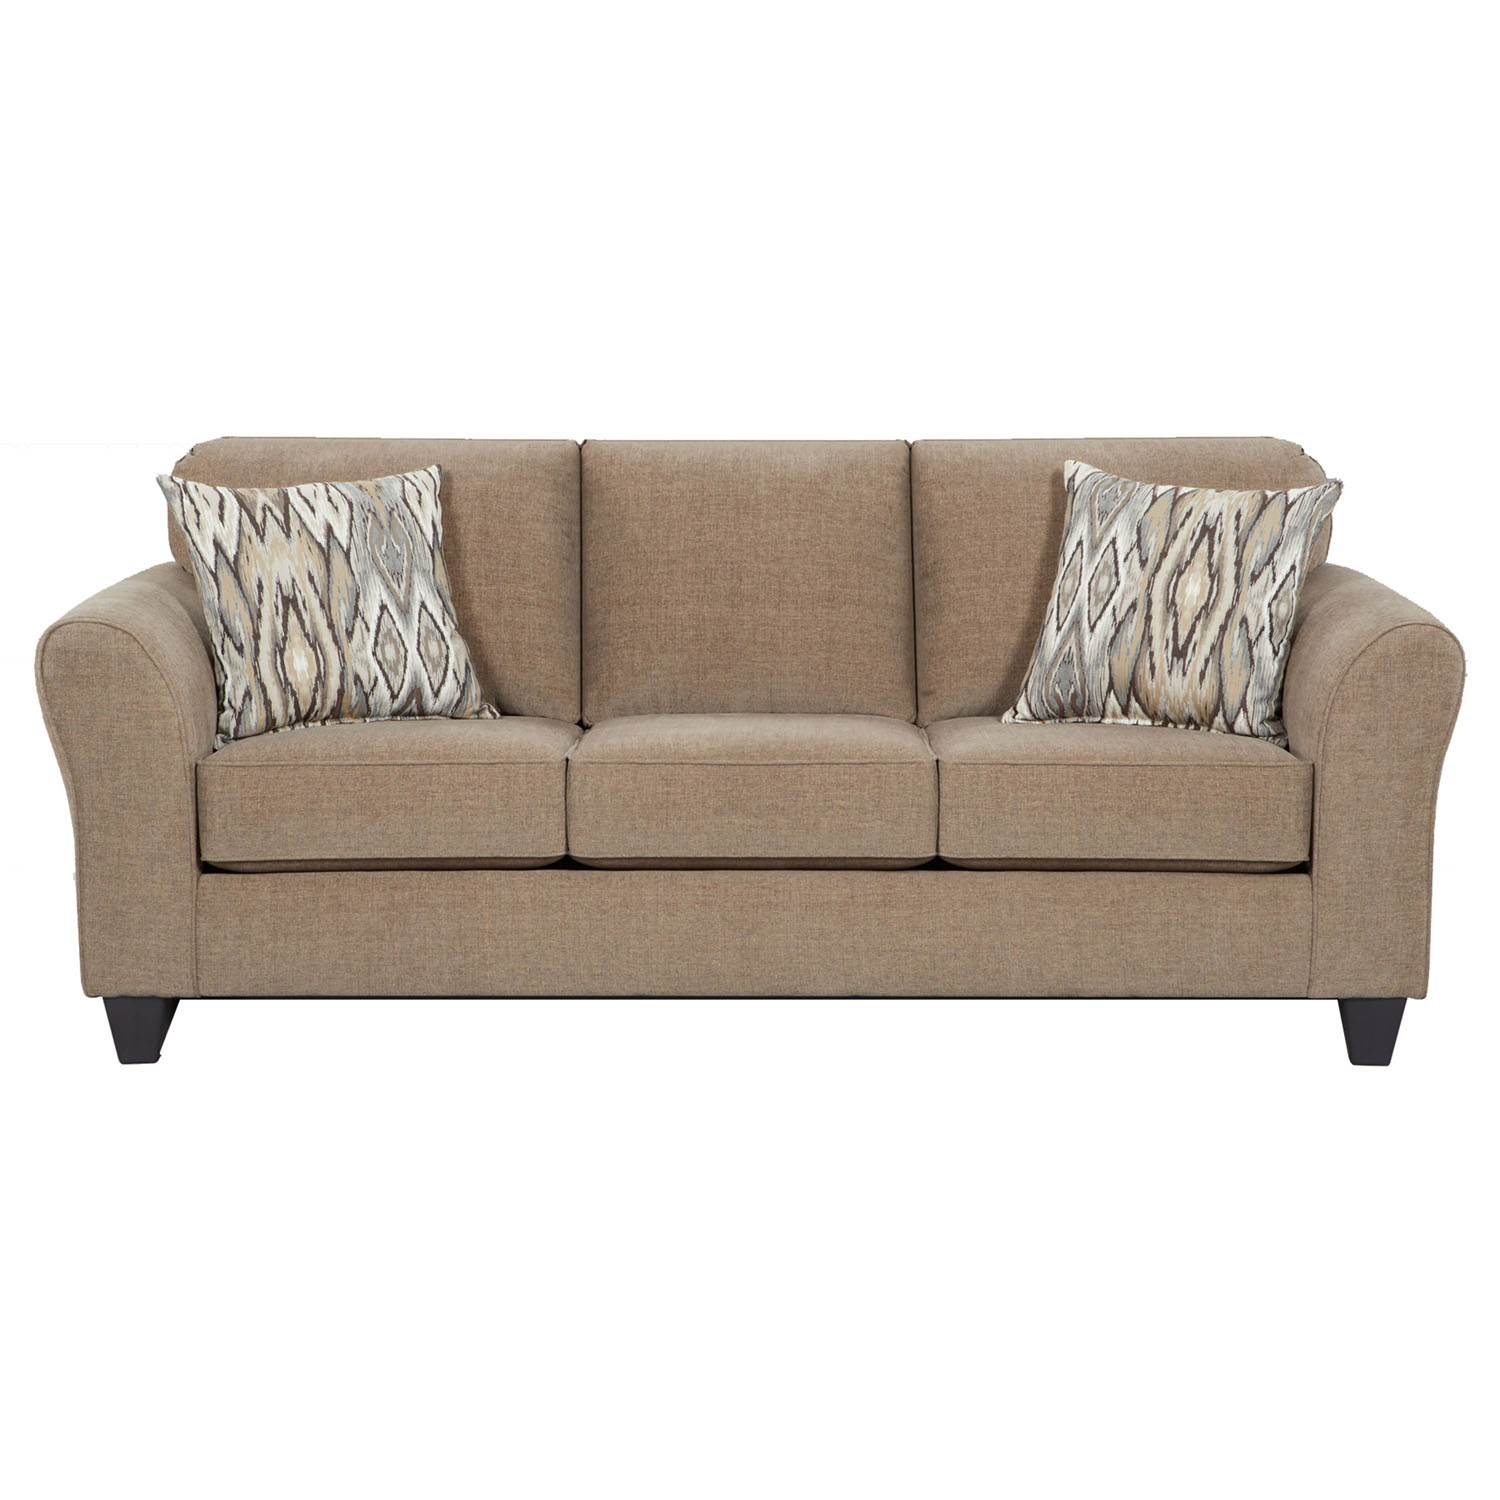 Cambridge Haverhill Sofa in Tan